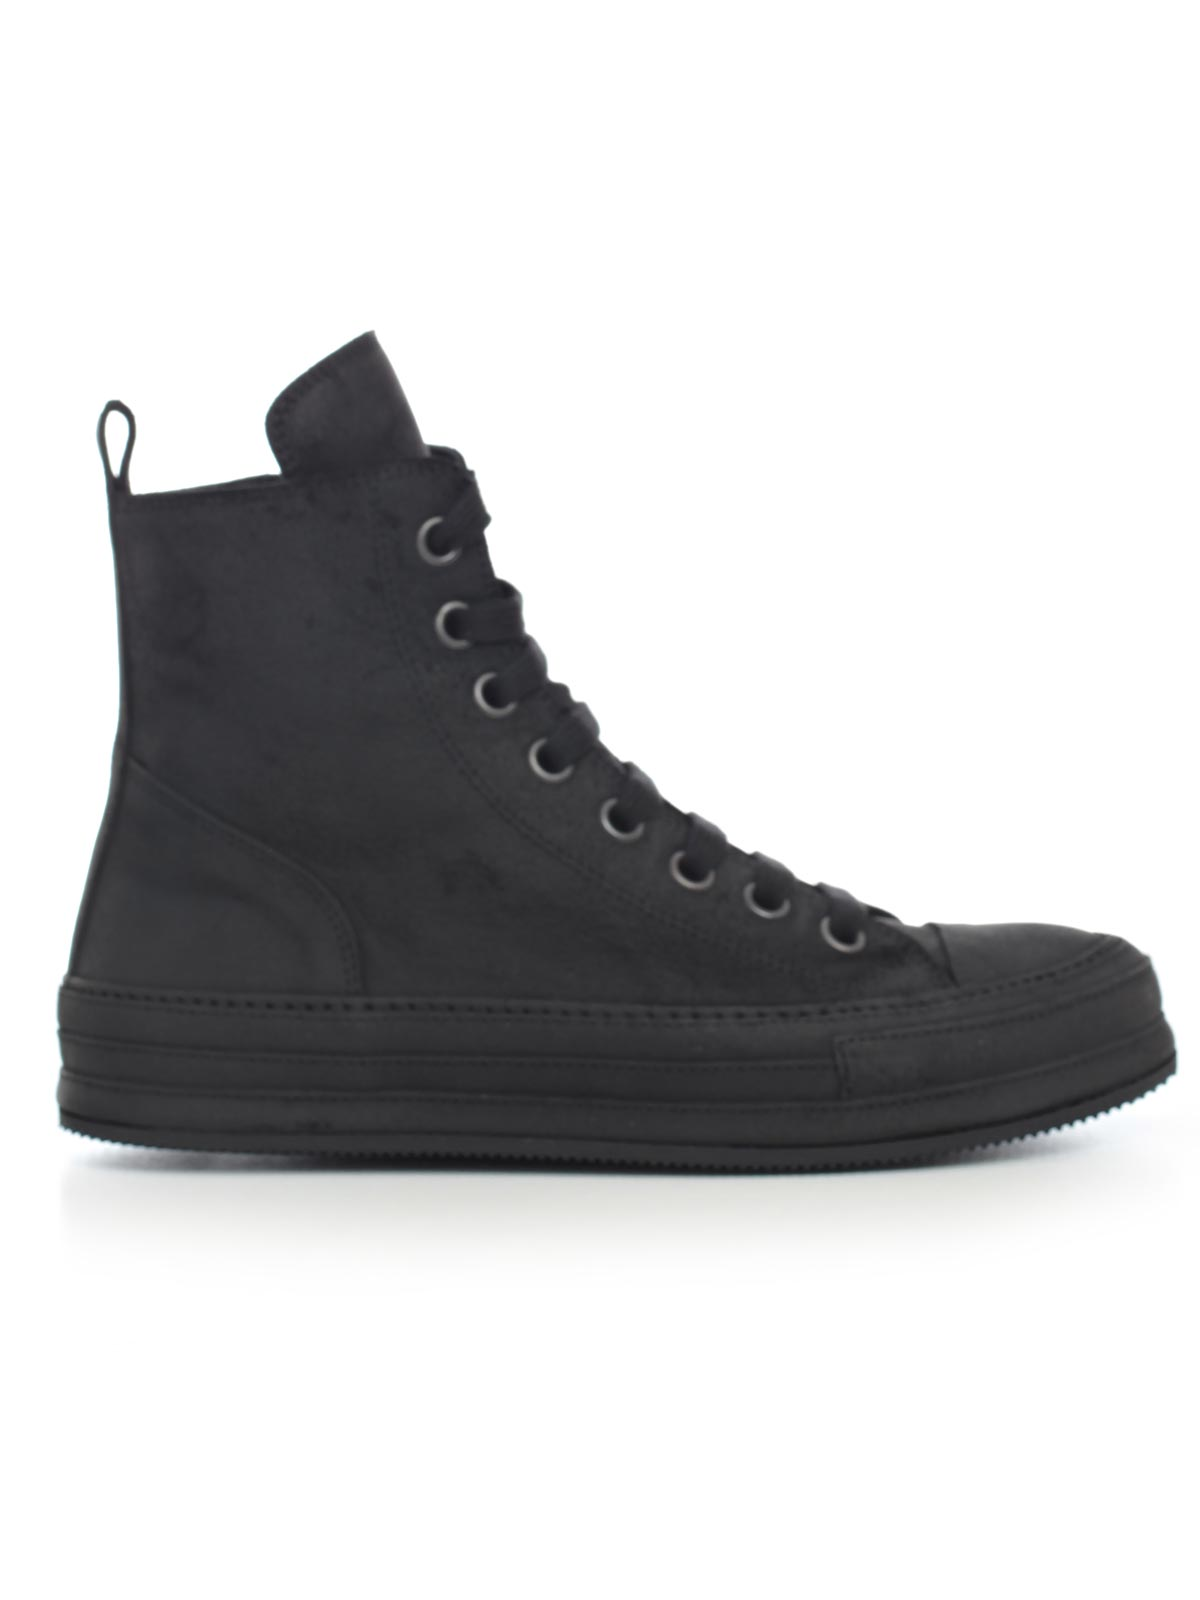 Picture of ANN DEMEULEMESTER Footwear